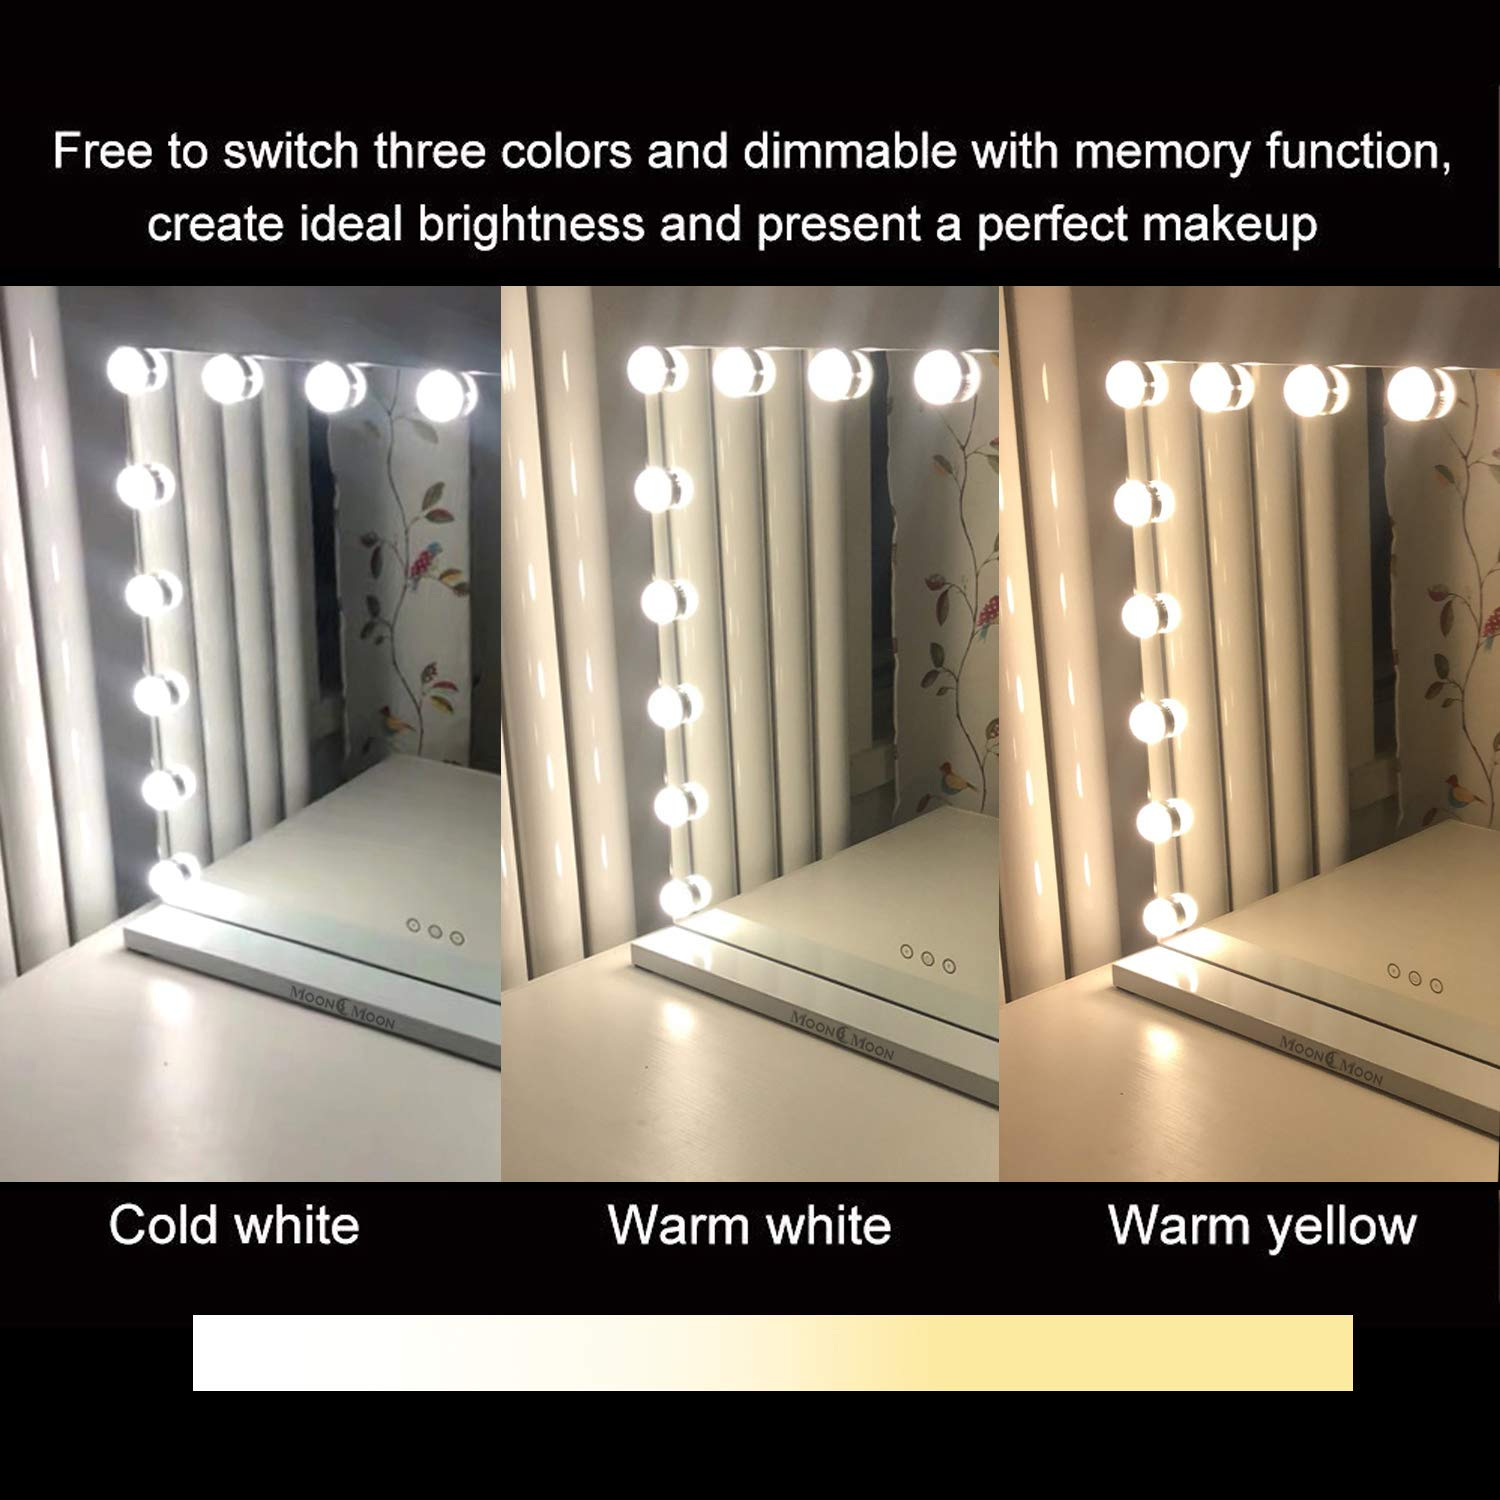 Moon Moon Hollywood Vanity Mirror with Lights,Professional Makeup Mirror & Lighted Vanity Makeup mirror with Smart Touch Adjustable LED Lights (White) by MoonMoon (Image #4)